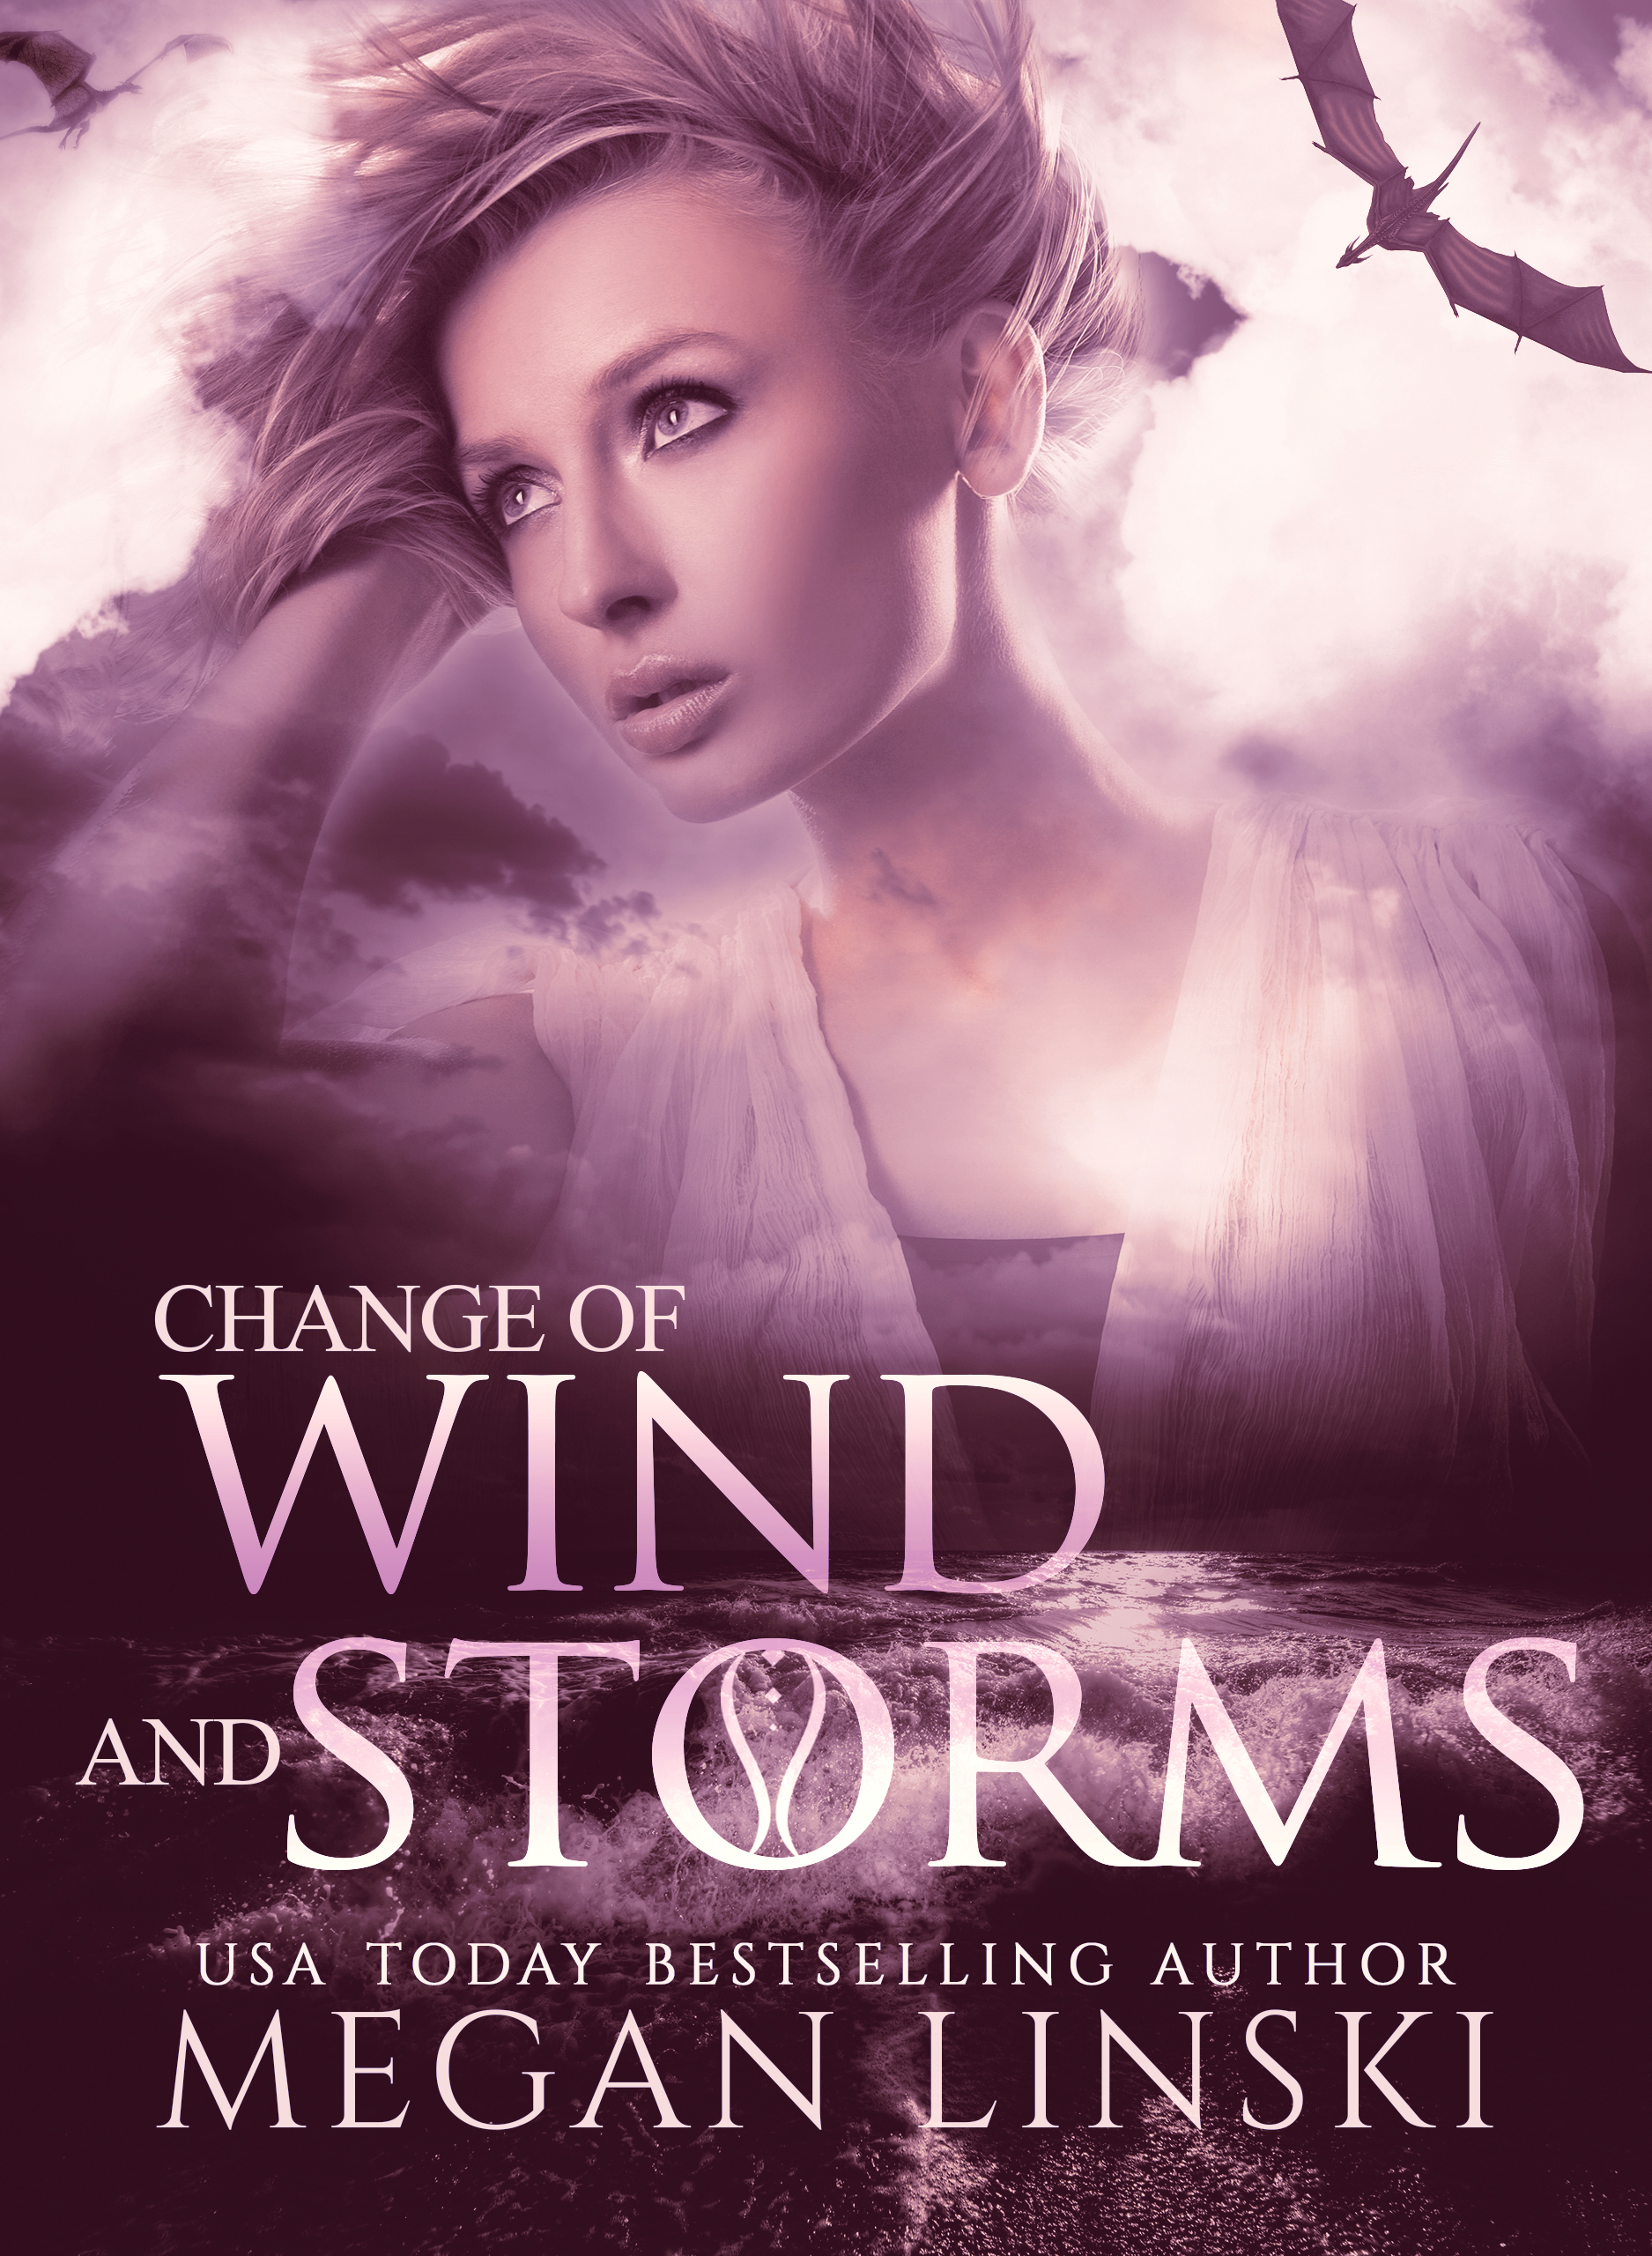 Change of Wind and Storms